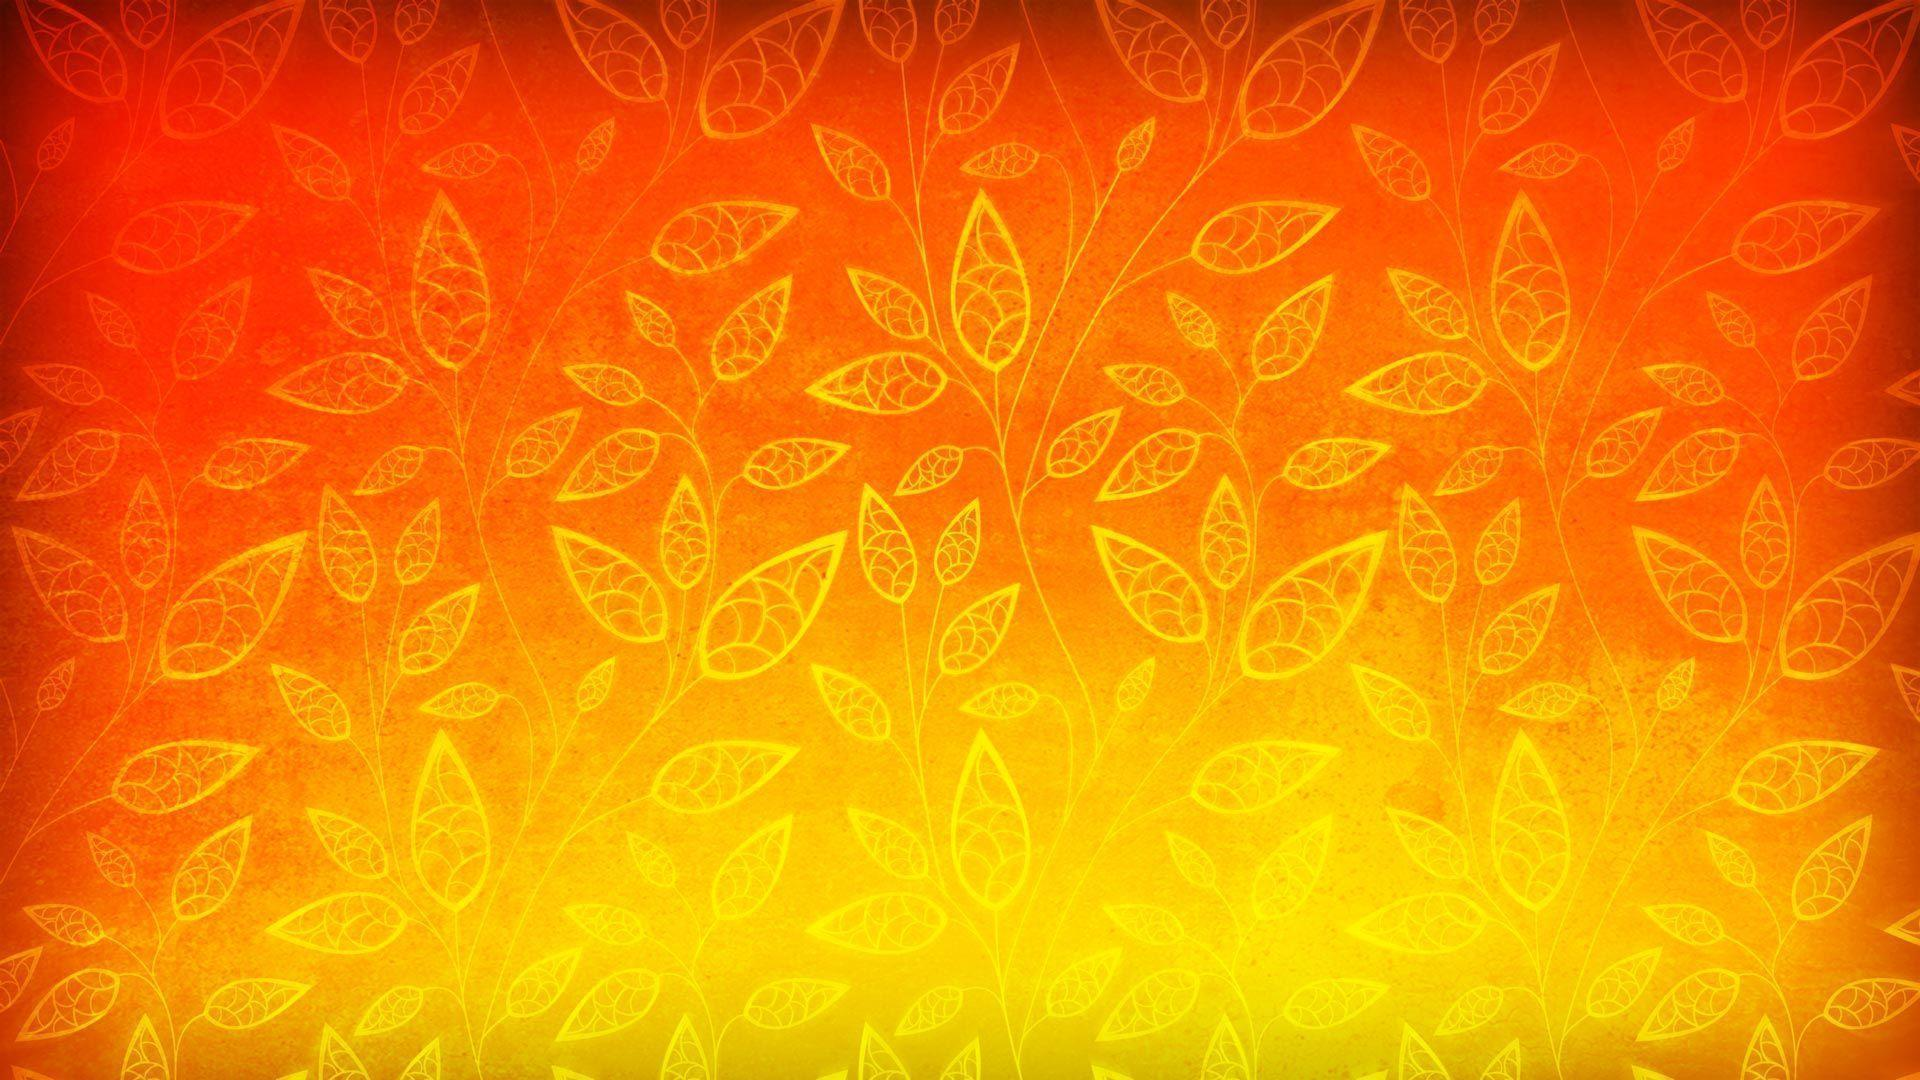 wallpaper autumn creative - photo #3